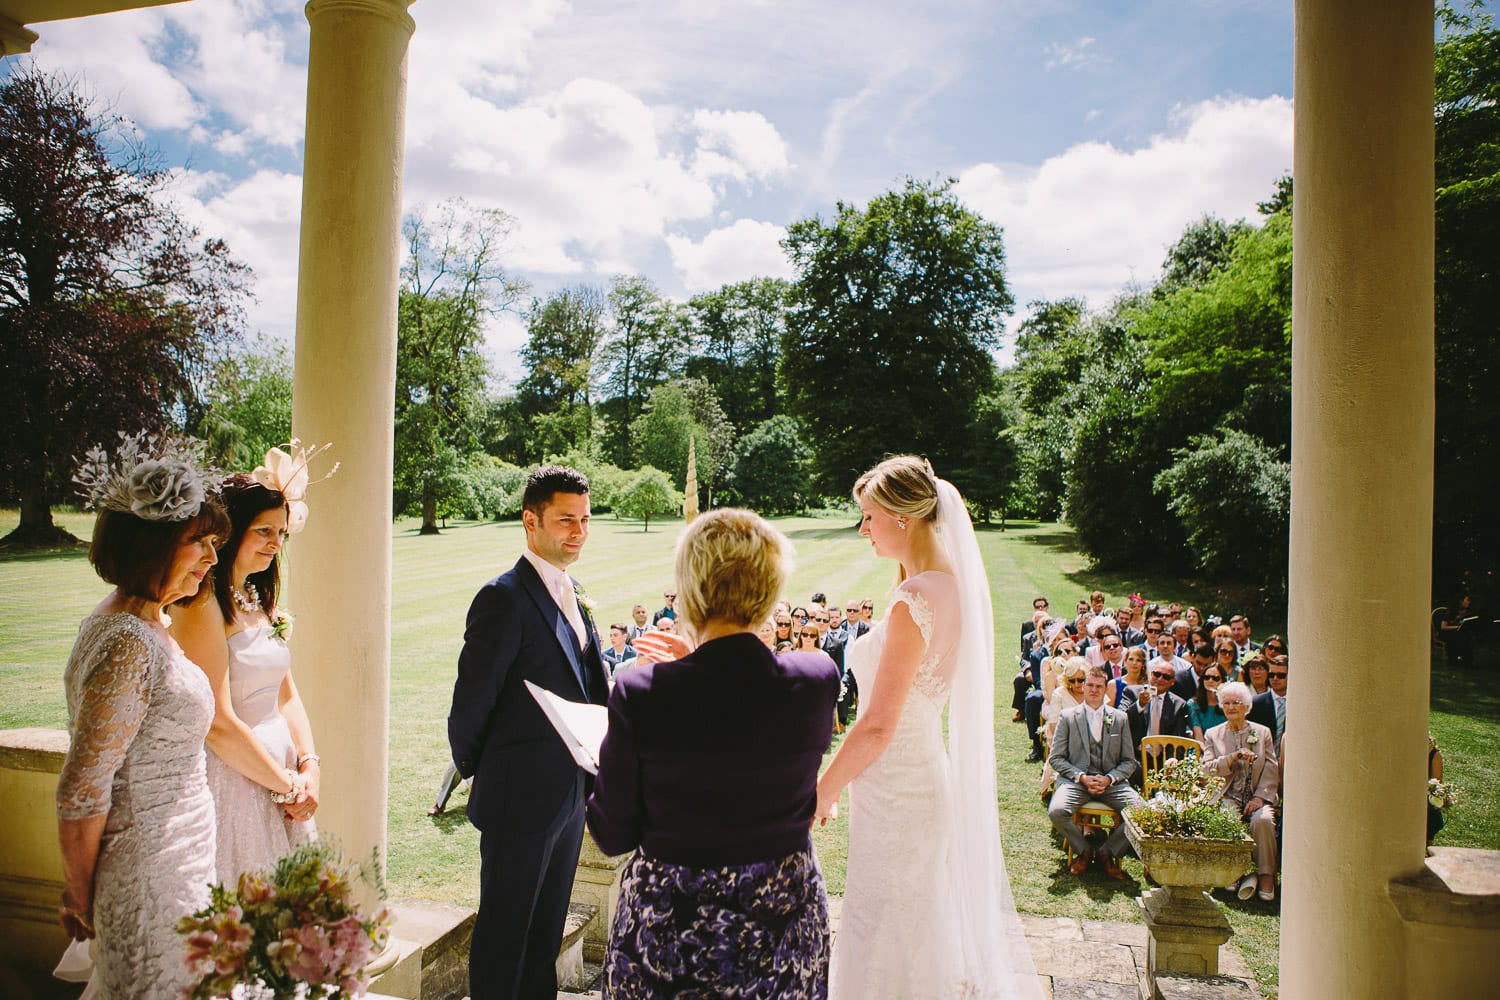 A wedding ceremony at Rockley Manor